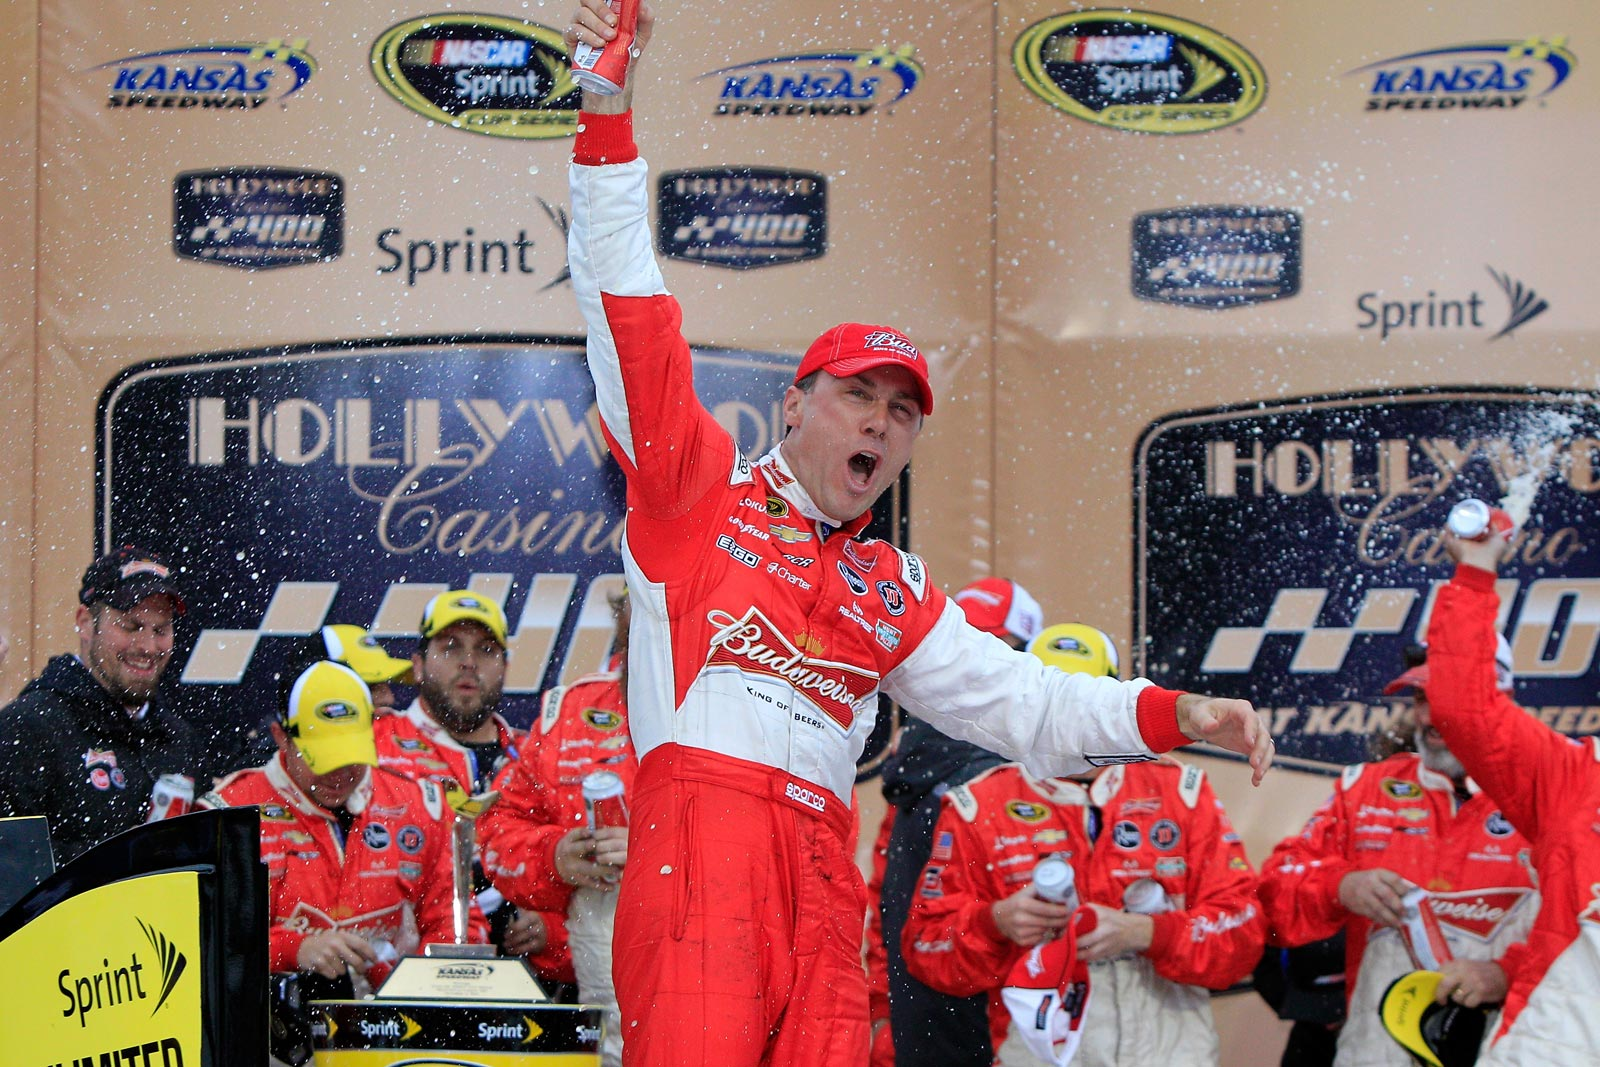 kevin_harvick_kansas_celebrate